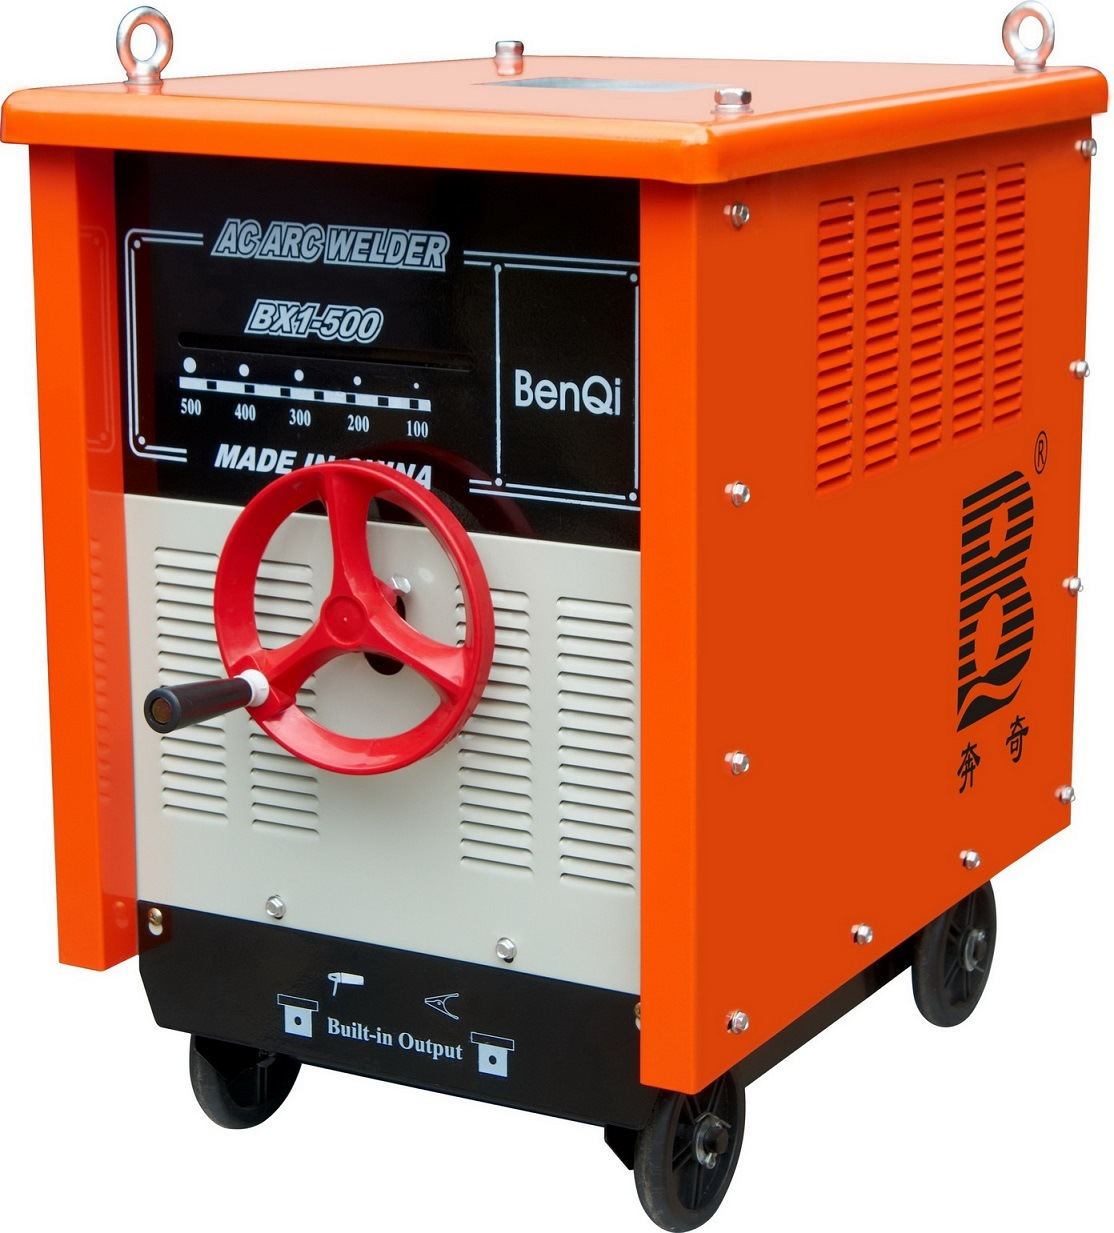 Bx1 Series Moving Core Type AC Smaw/MMA Arc Welder (BX1-500)